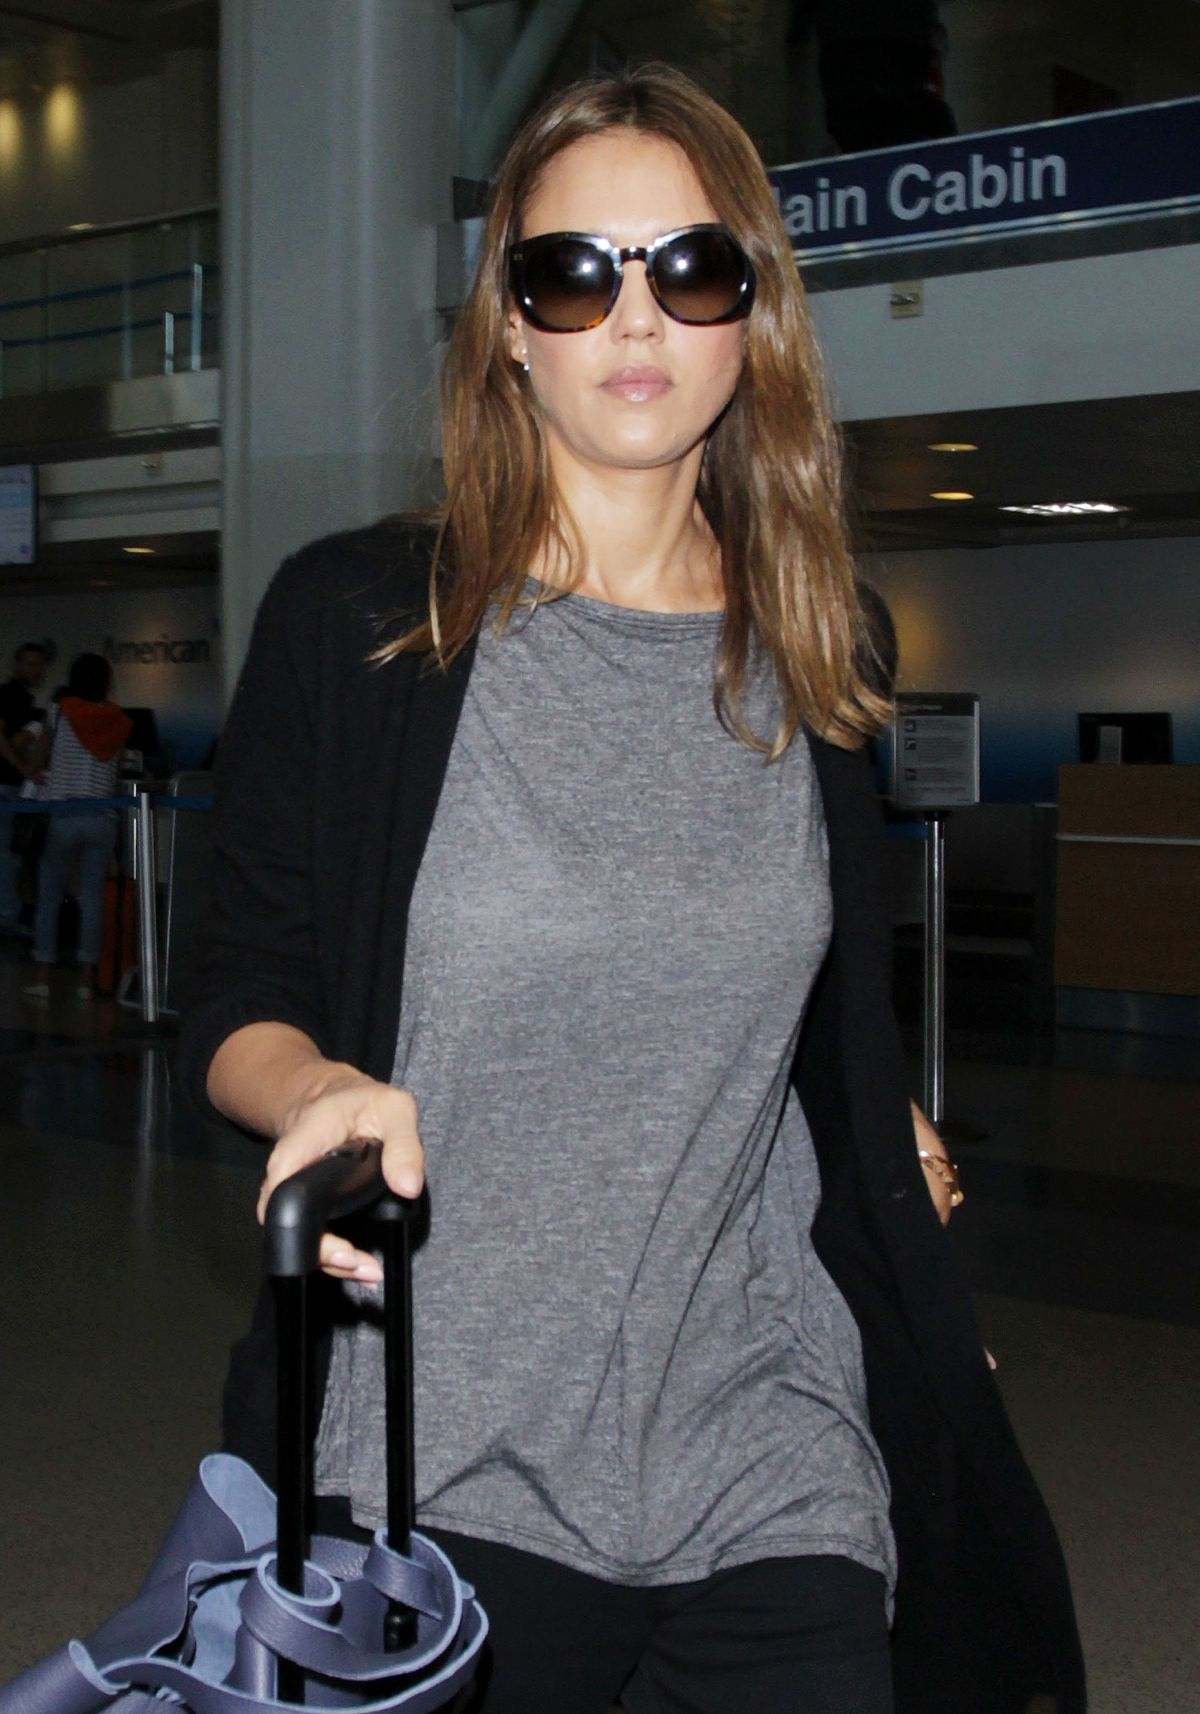 JESSICA ALBA at LAX Airport in Los Angeles 06/17/2016